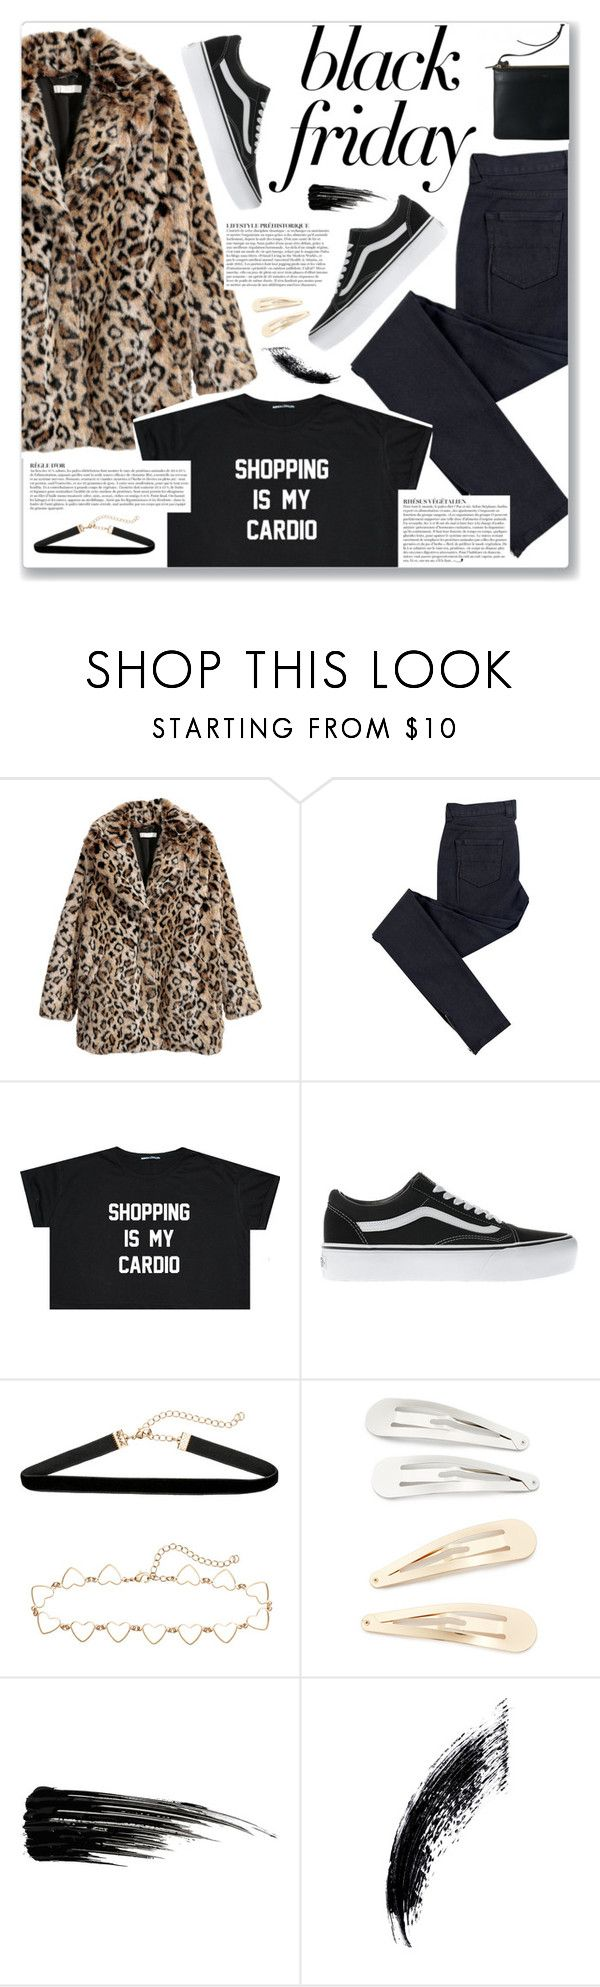 """Steal Those Deals: Black Friday"" by myduza-and-koteczka ❤ liked on Polyvore featuring C.R.A.F.T., Anja, Vans, Kitsch and Urban Decay"